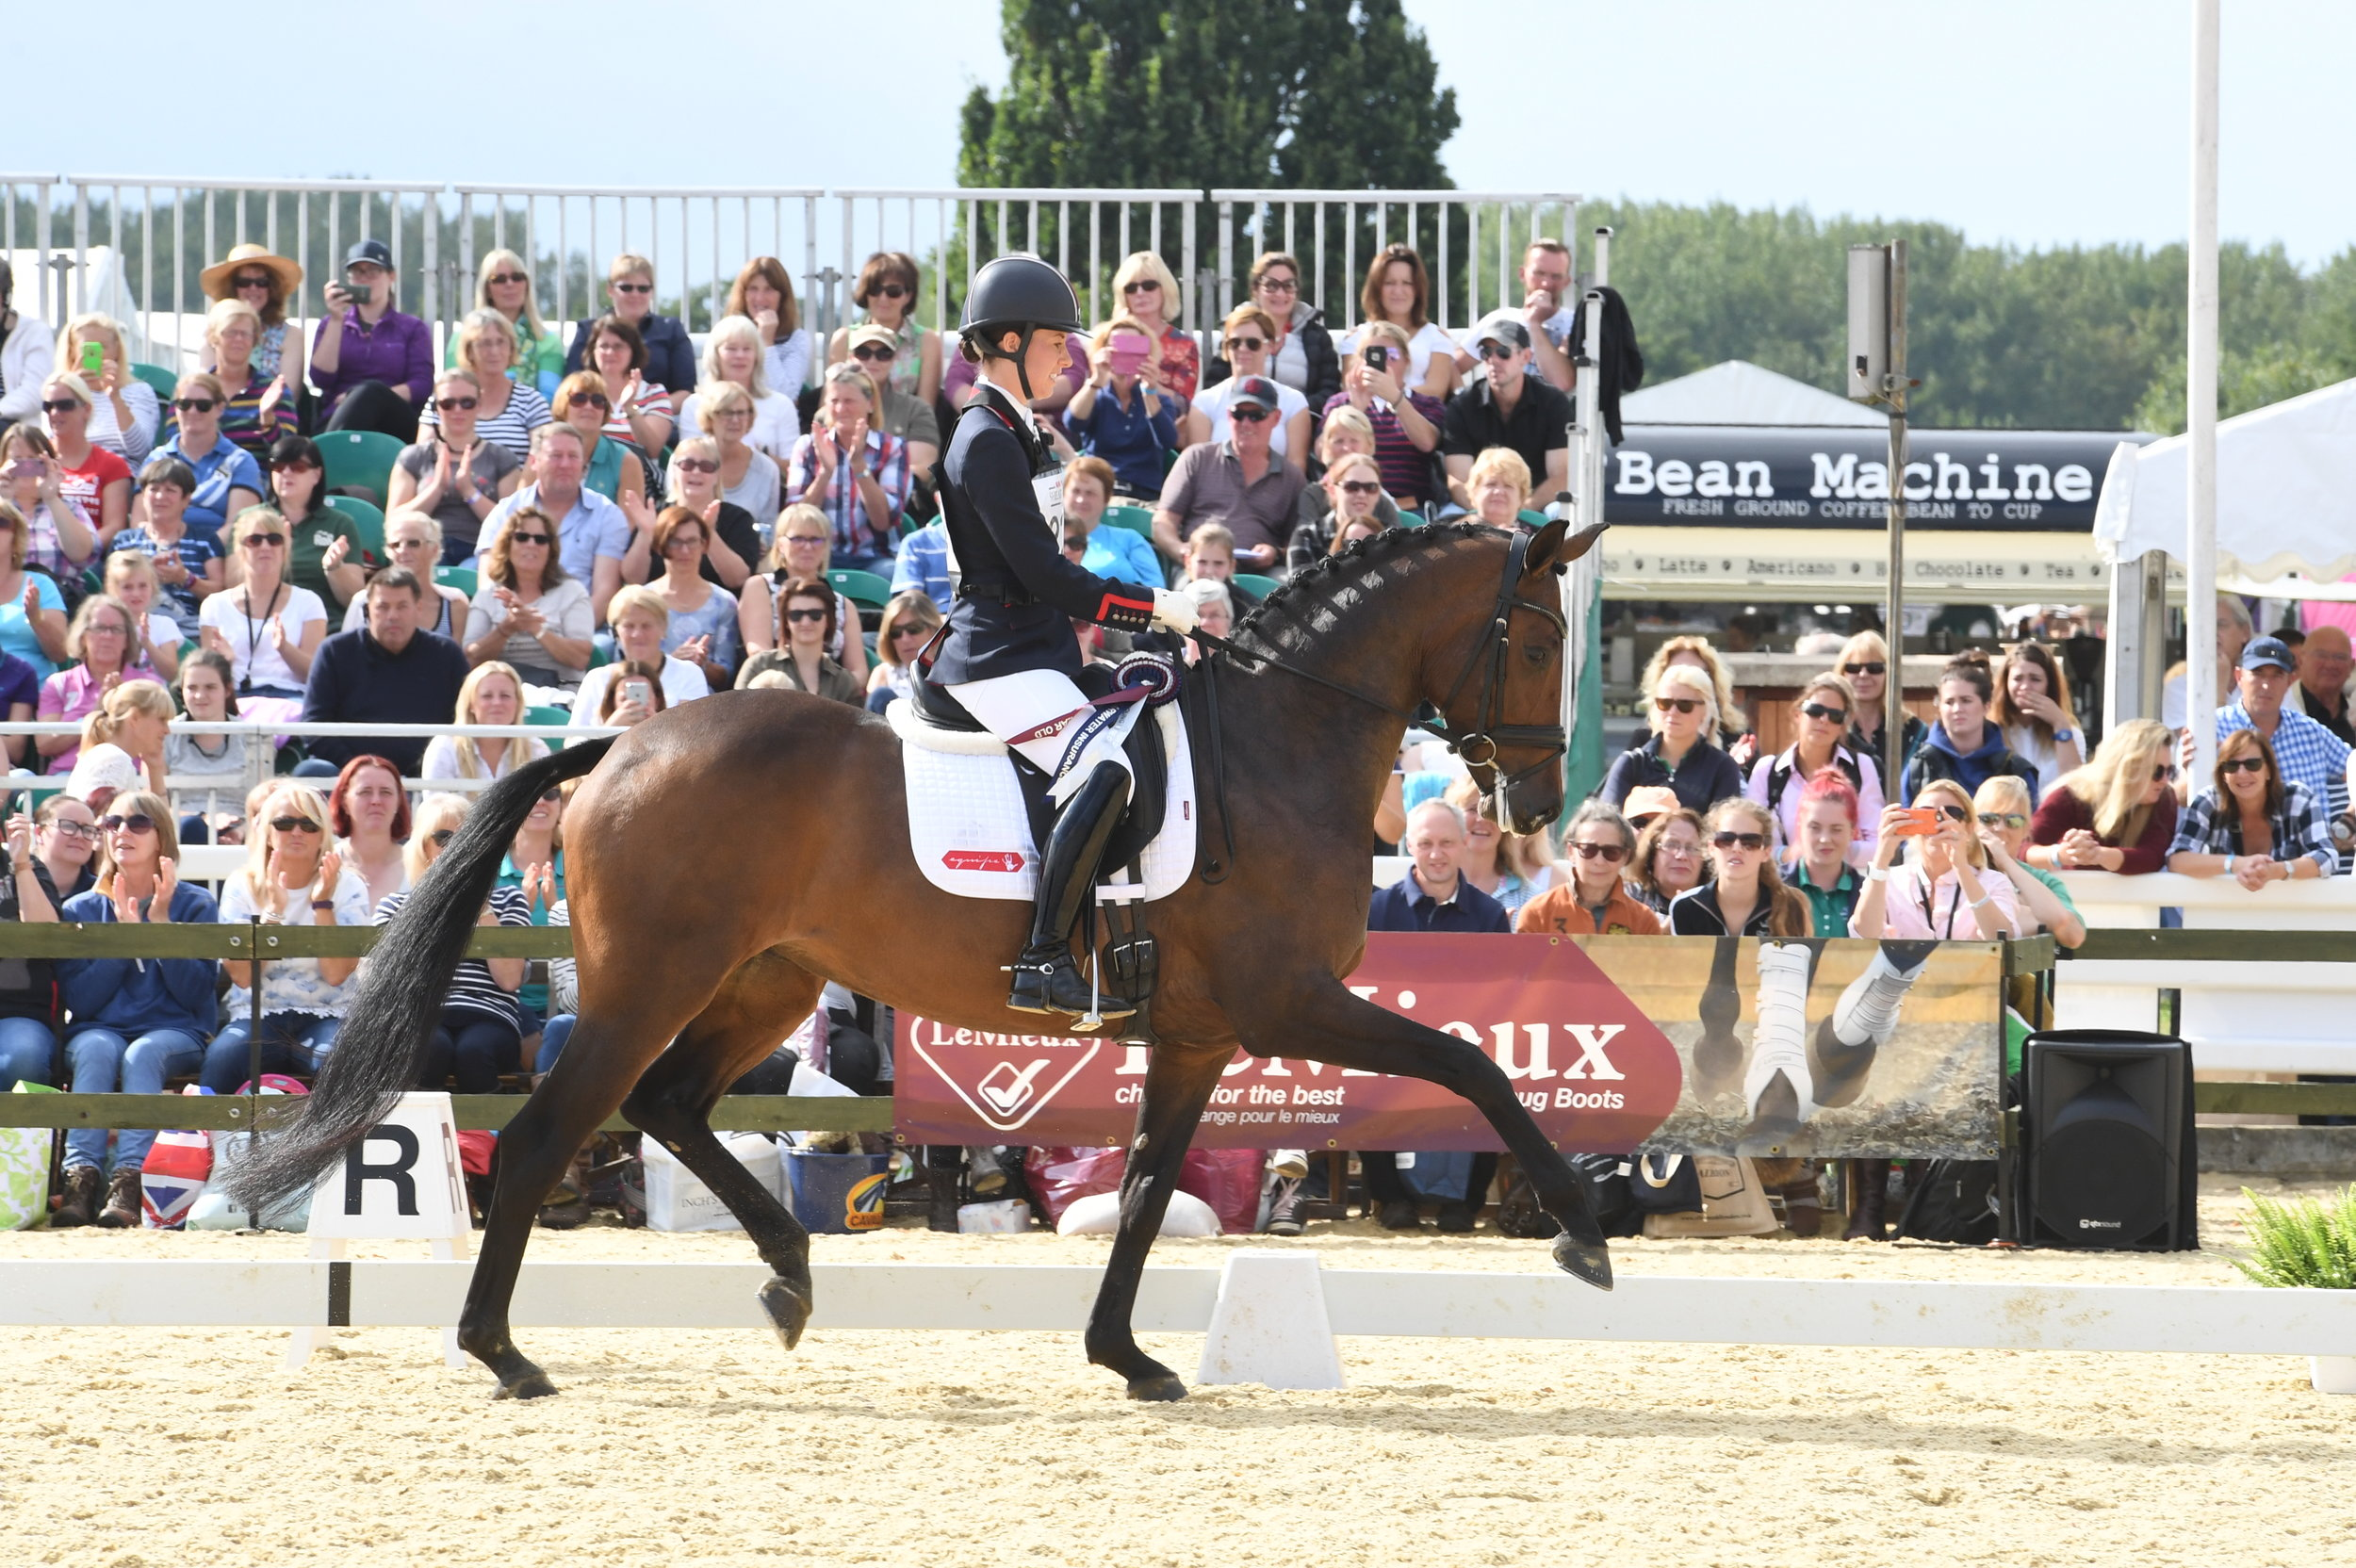 Charlotte Dujardin has a range of up and coming young horses already winning (Credit: www.kevinsparrow.co.uk)